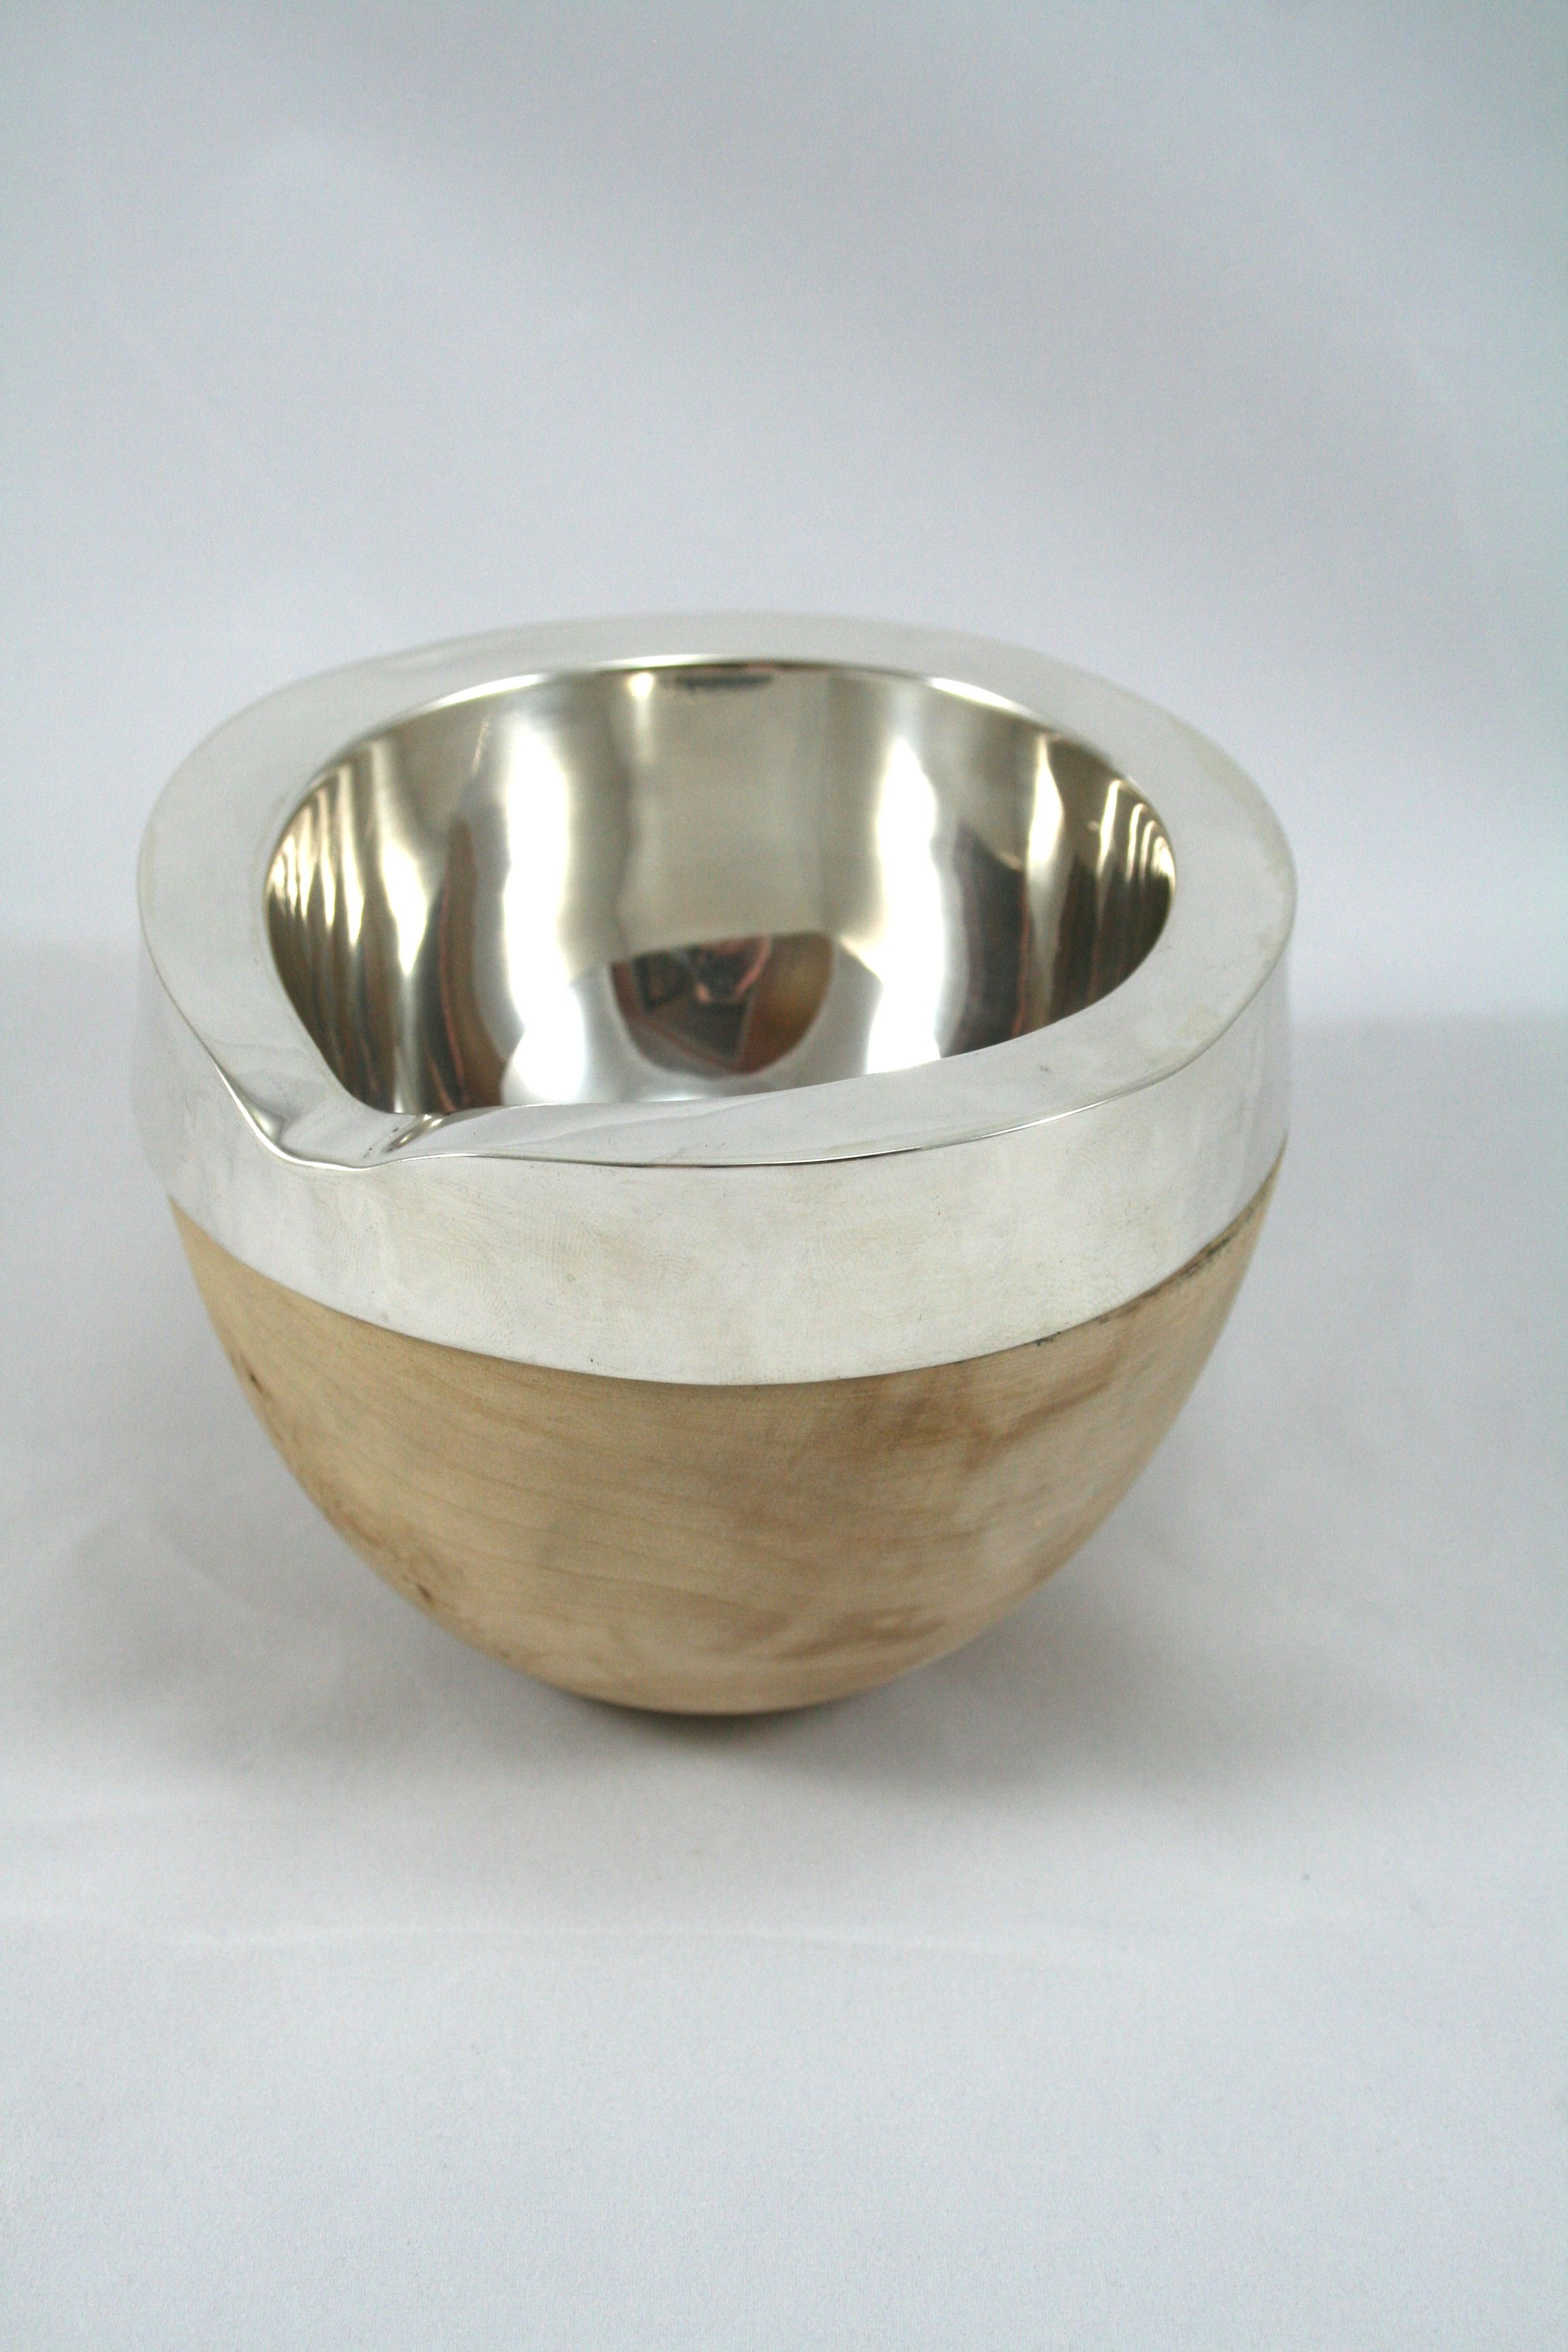 Conker And Sterling Silver Milk Jug Handmade By Gill